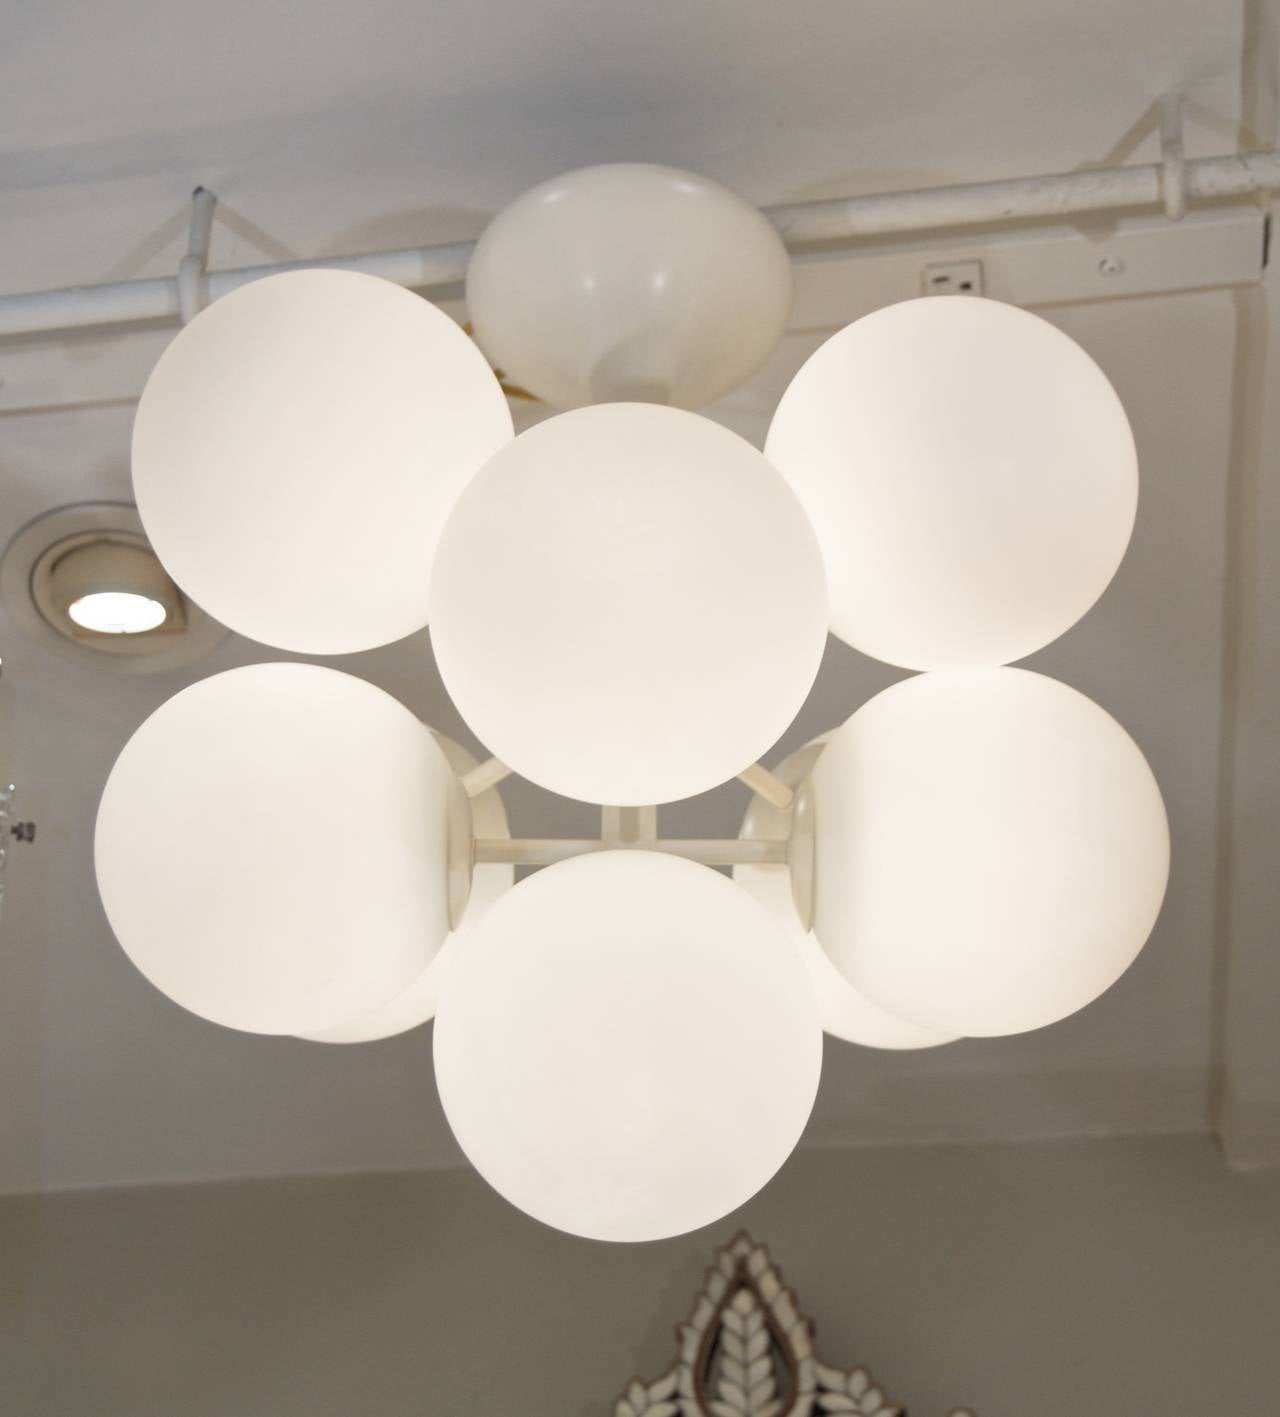 Mid-Century Modern Temde Atomic Chandelier in White Enamel with Opal Globes For Sale